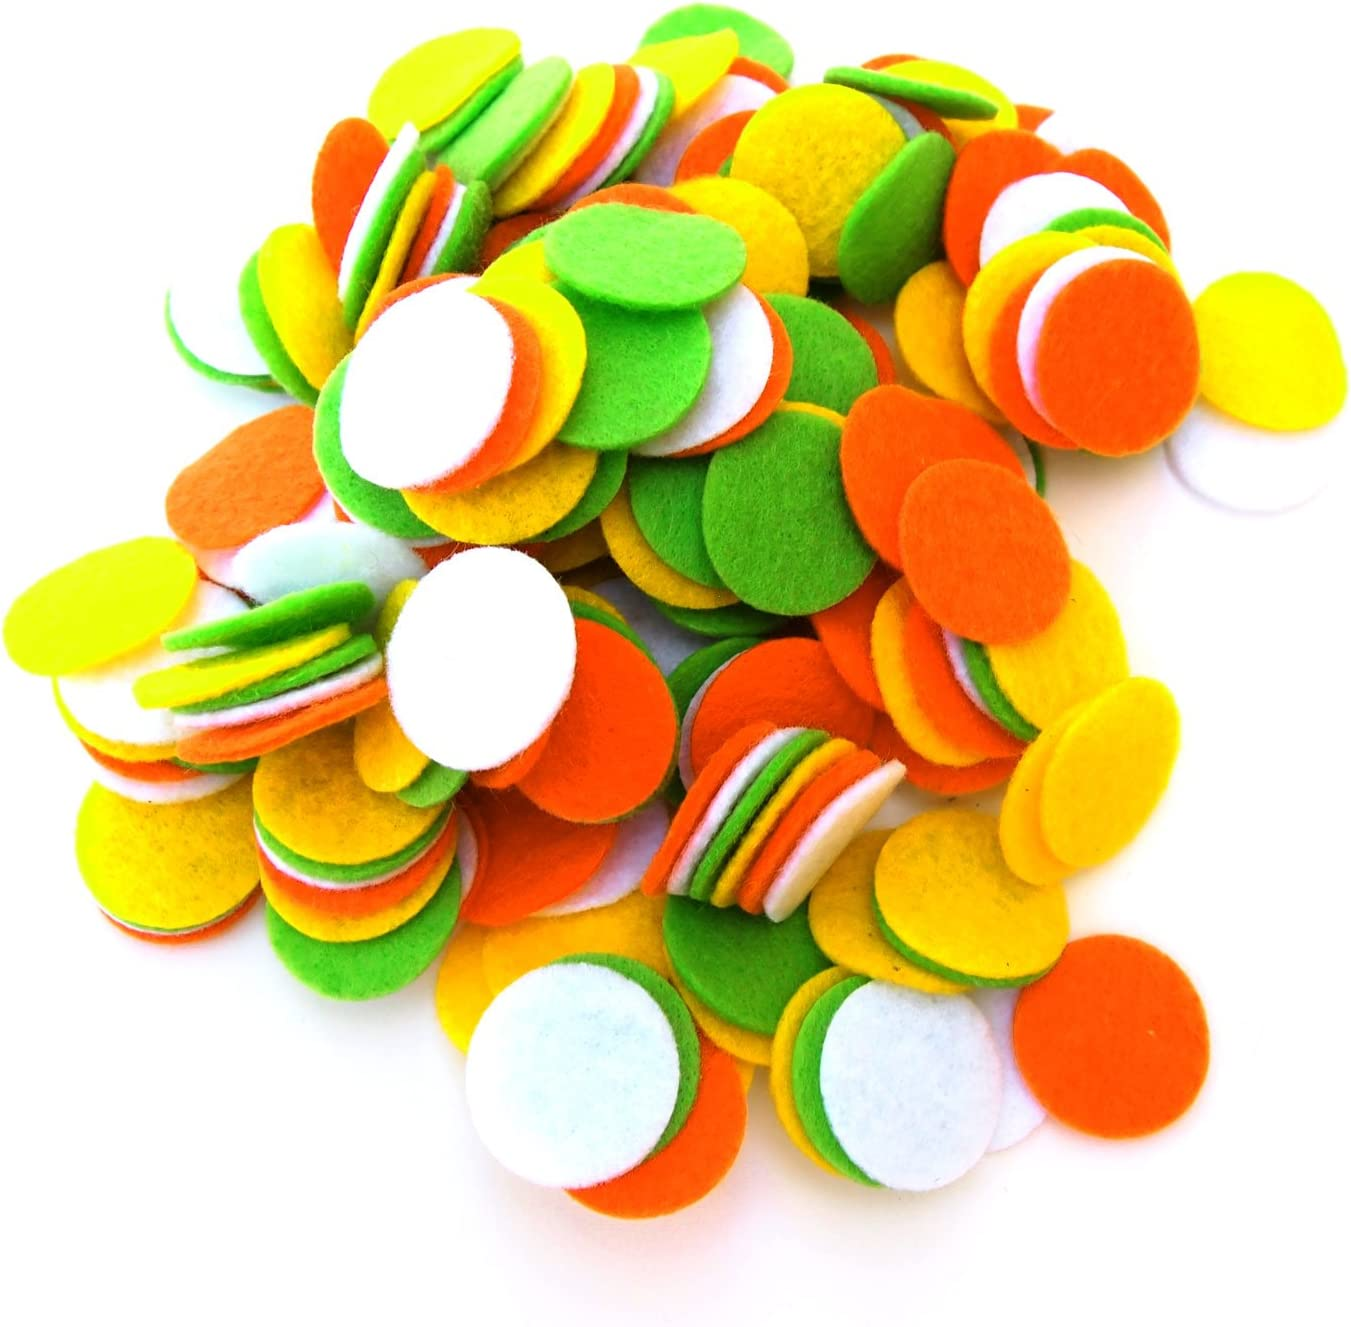 White Playfully Ever After Light Green Orange /& Yellow Craft Felt Circles 1 Inch - 200pc